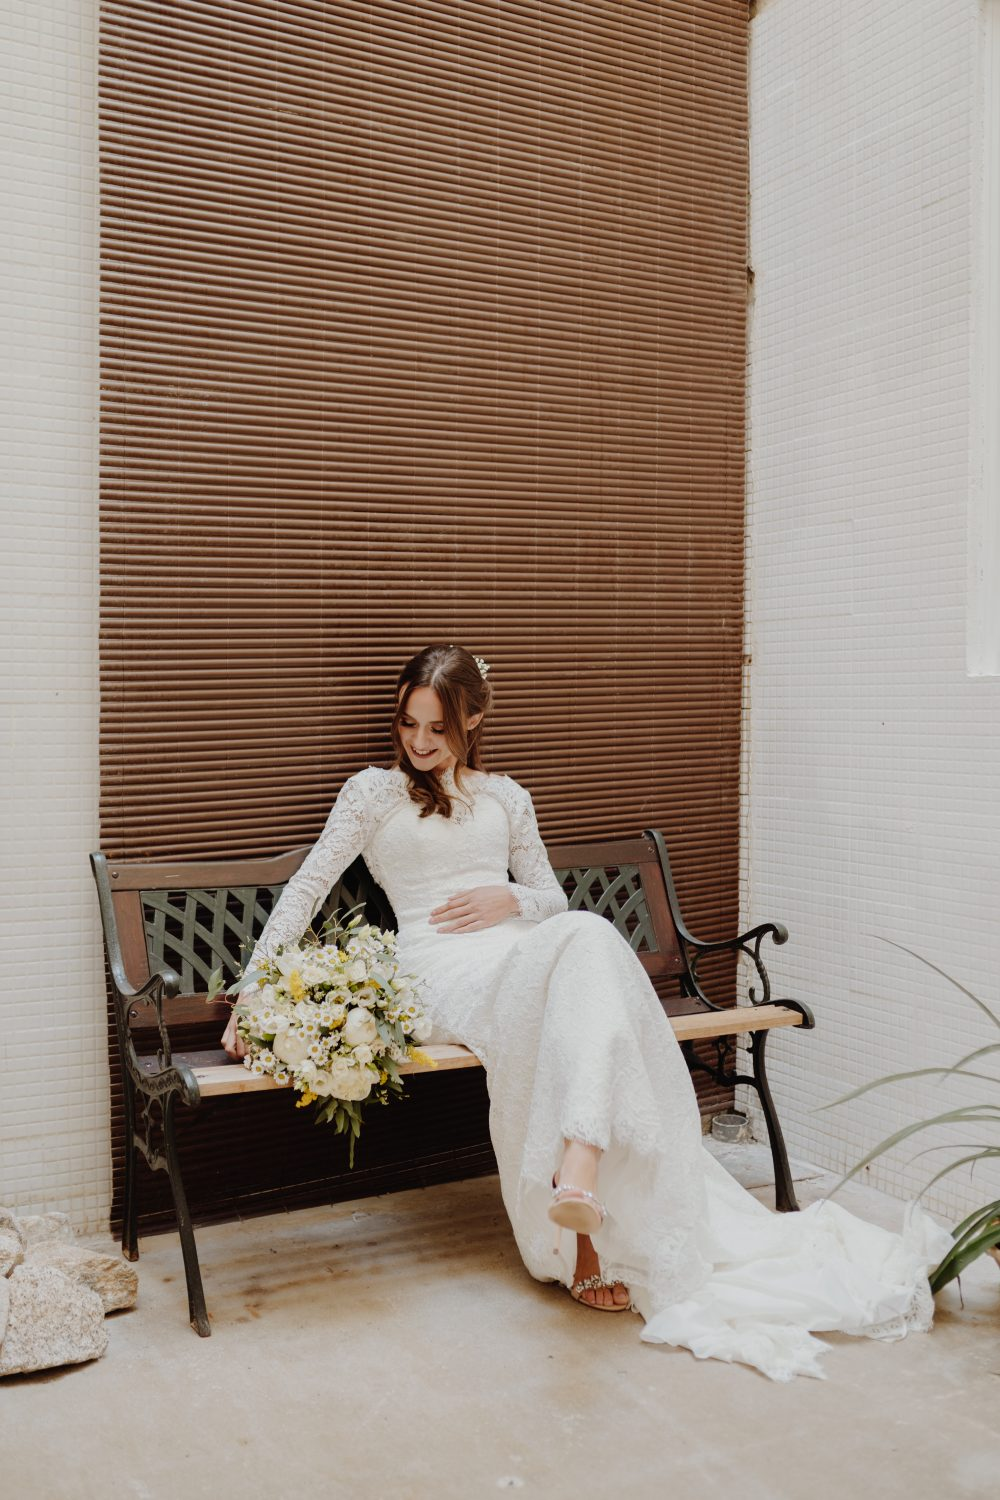 Getting married at home is a beautiful way to personalise your wedding day. Andreia & Rui chose their home as their wedding venue two months prior to the wedding and it was one of the best decisions they made!